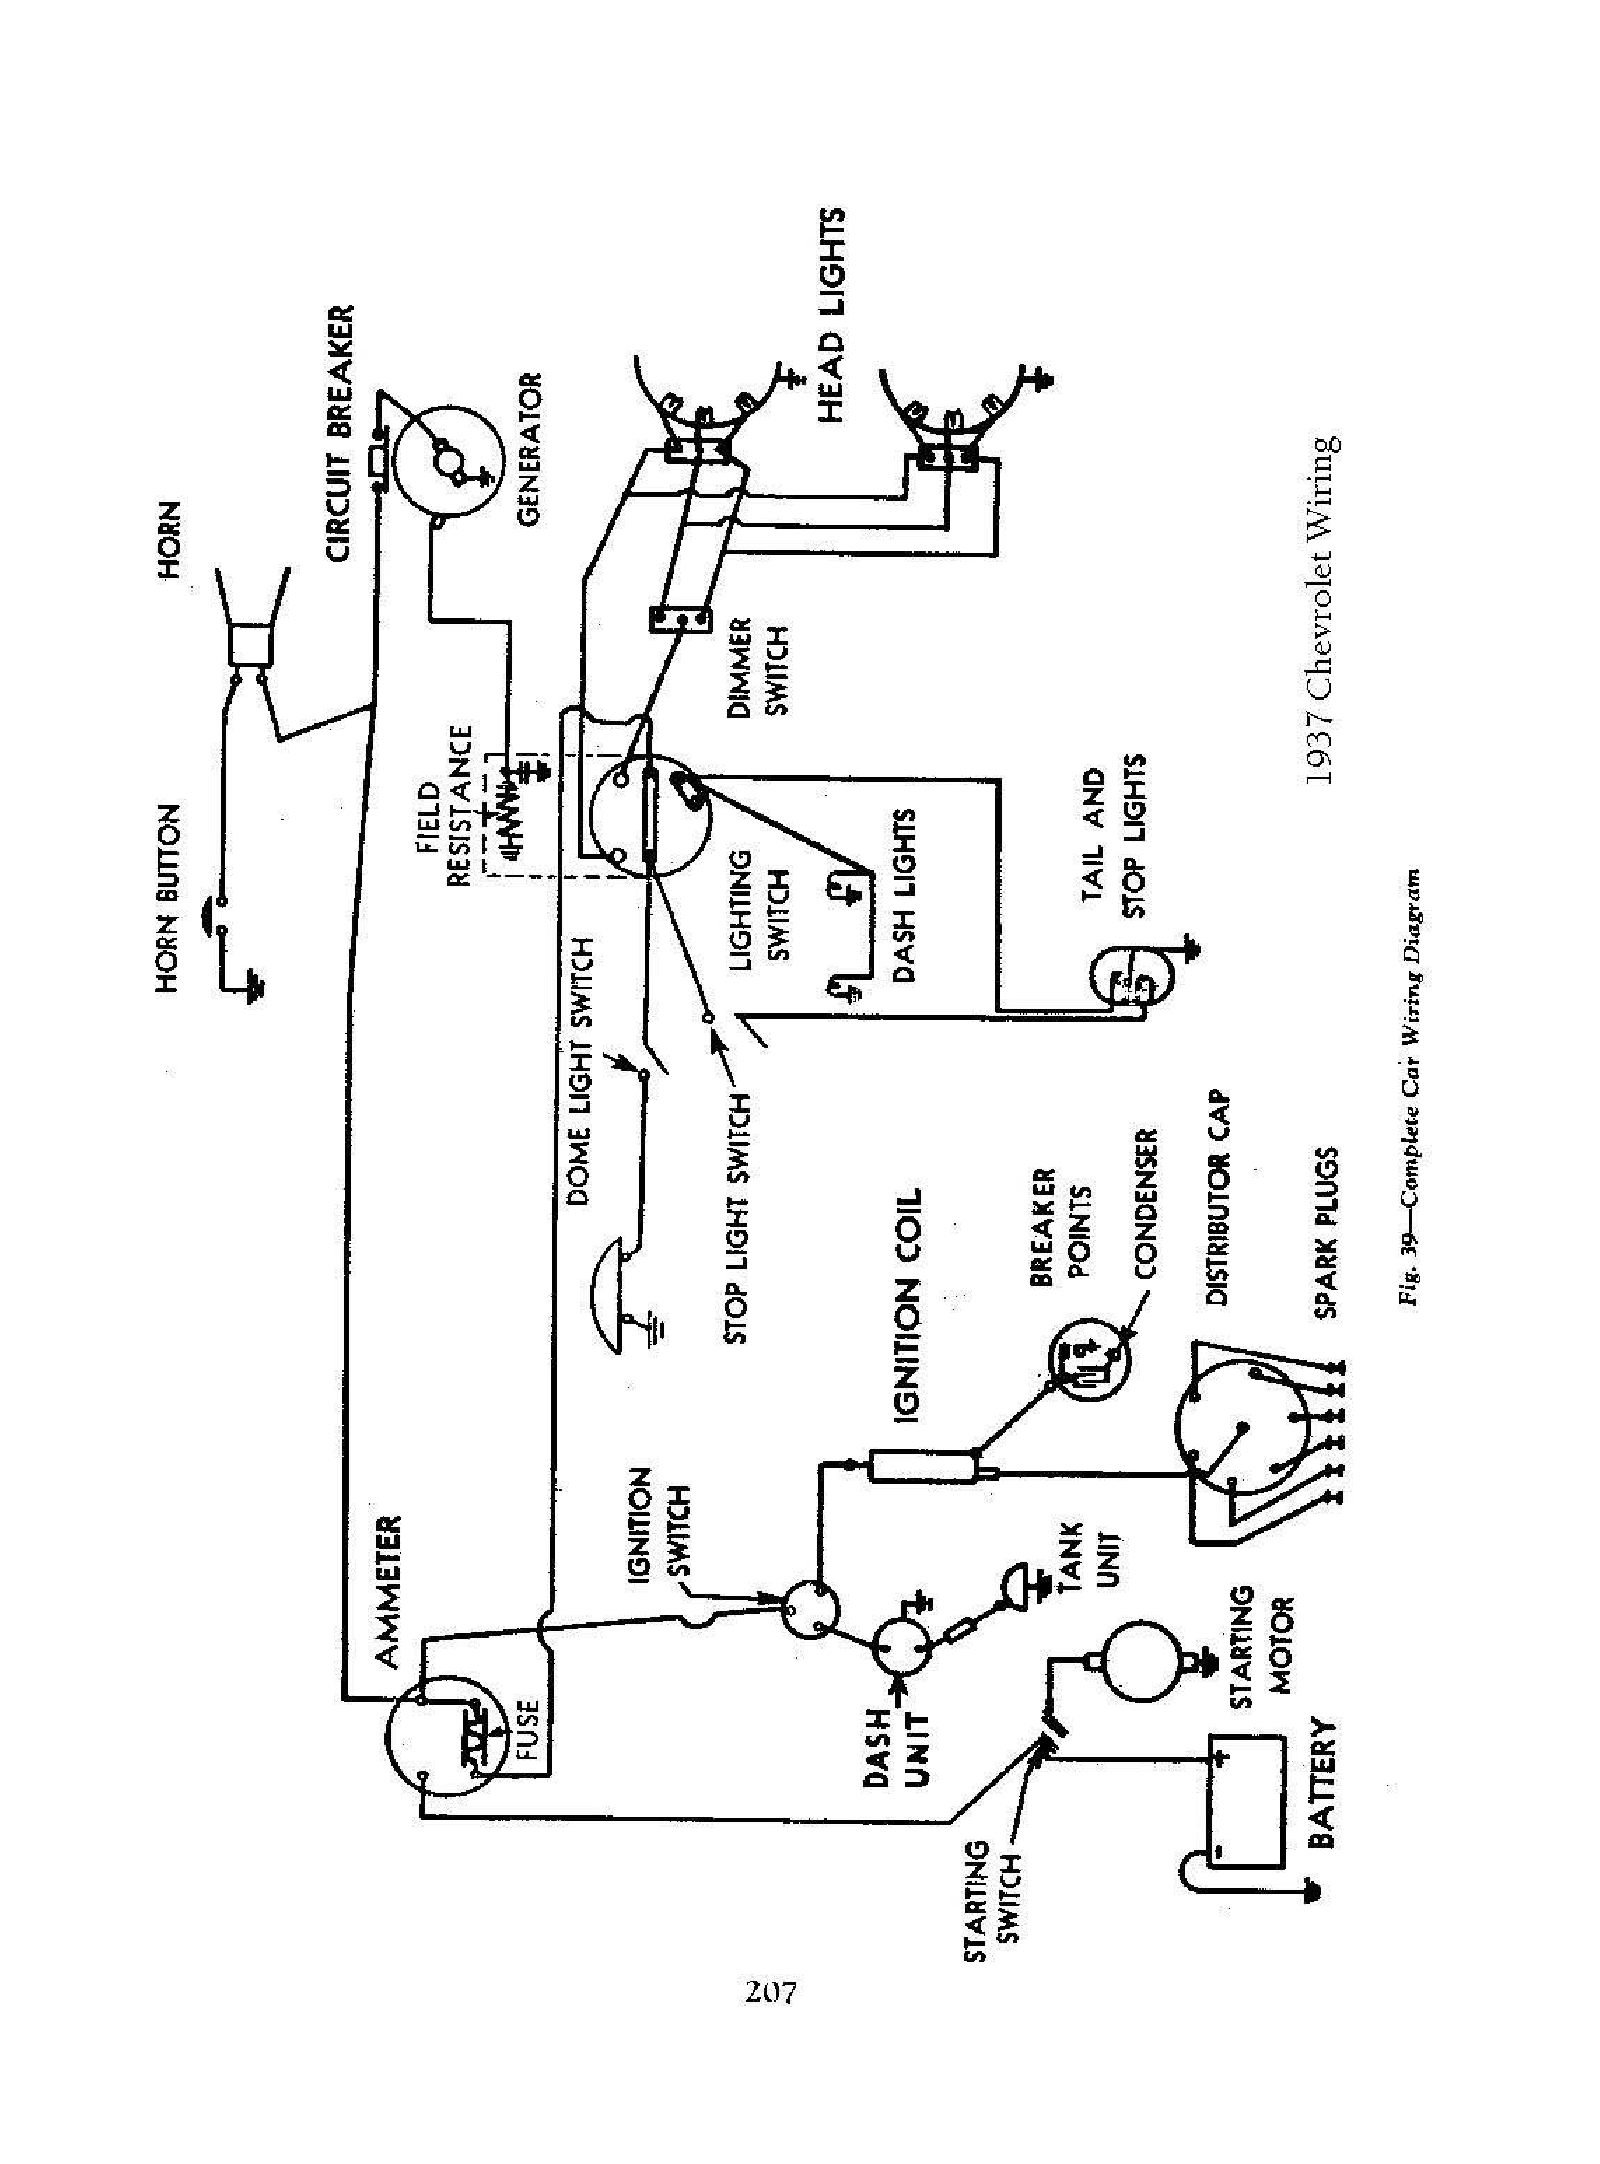 1937 Chevy Horn Wiring Question About Diagram To A 38 Headlight Switch Wire 1939 42 1938 Truck 1936